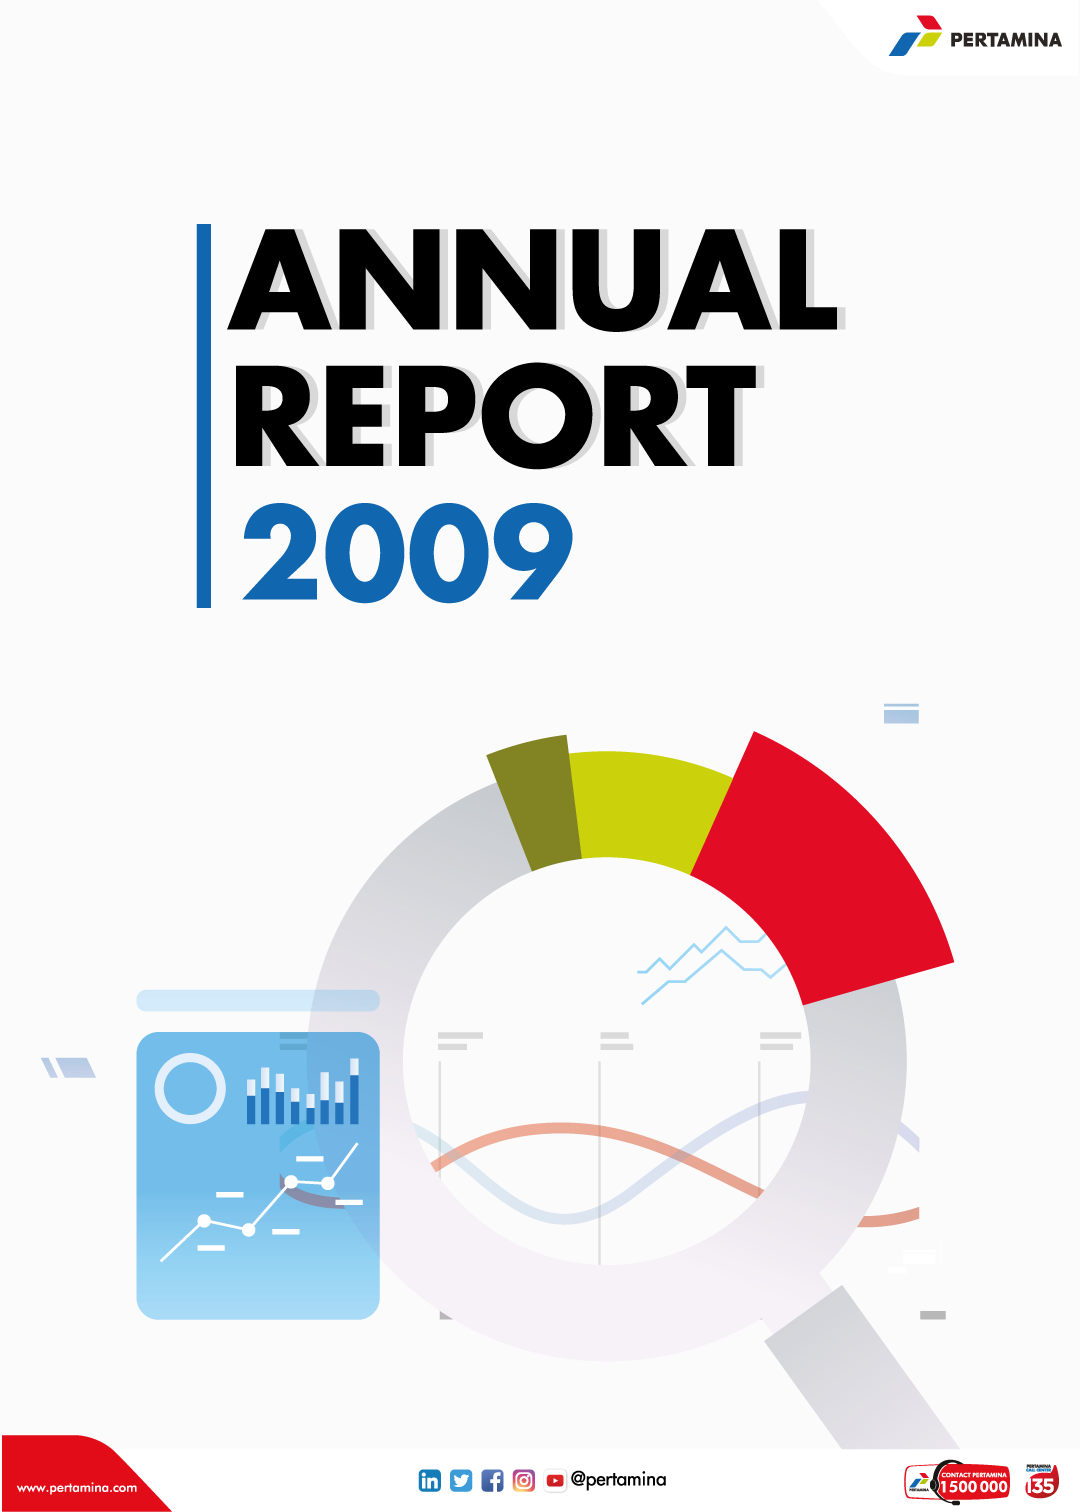 Annual Report Pertamina 2009